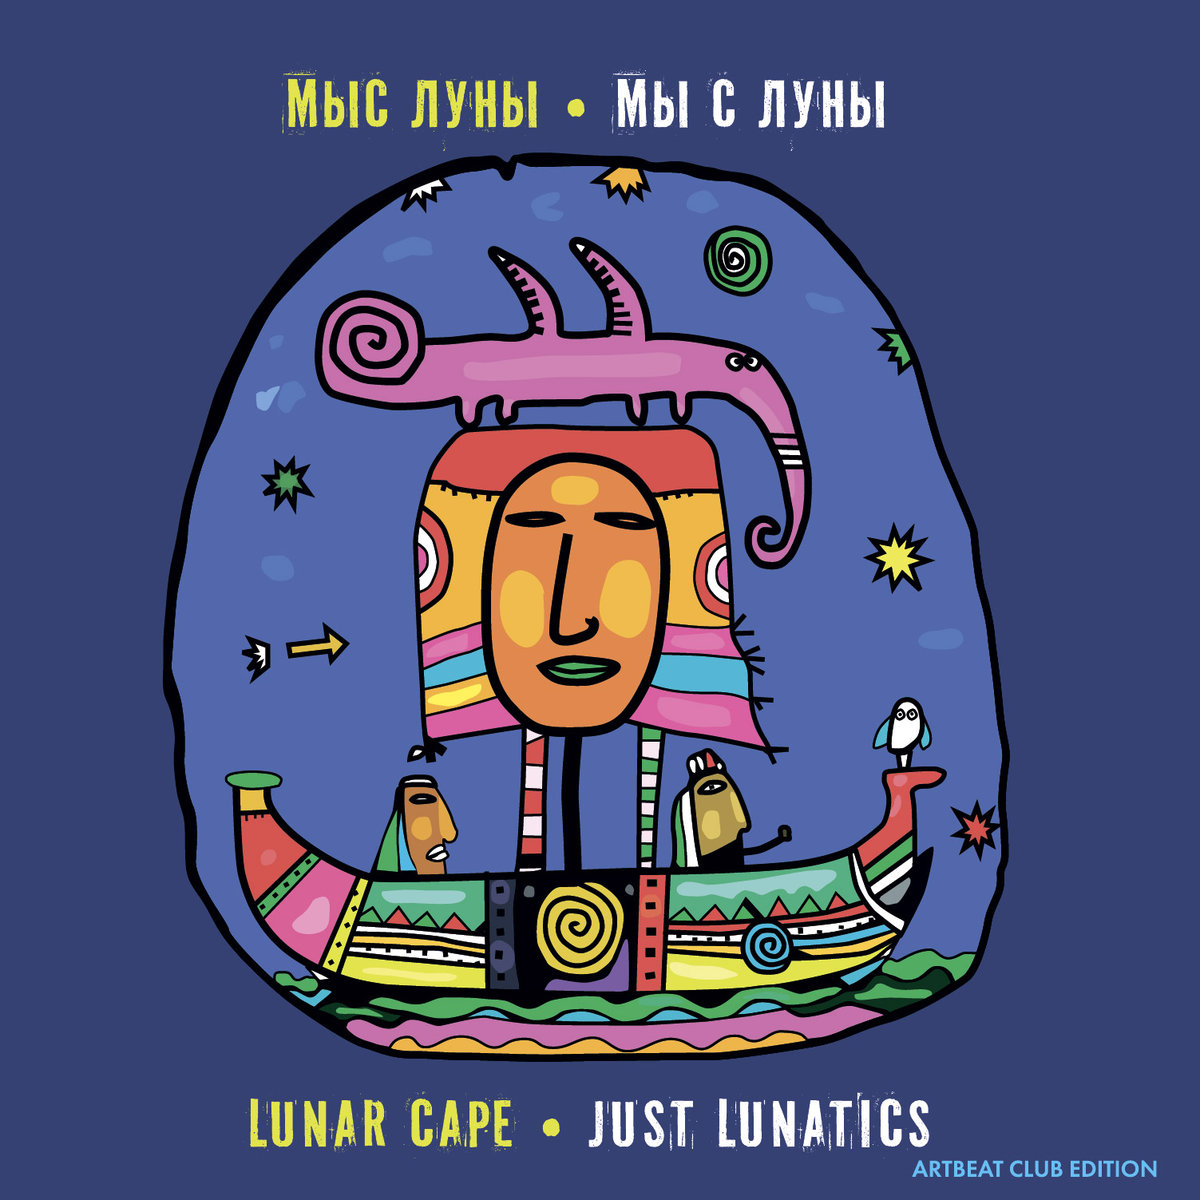 Lunar Cape - Motorbike @ 'Just Lunatics' album (jazz fusion, soundtrack)